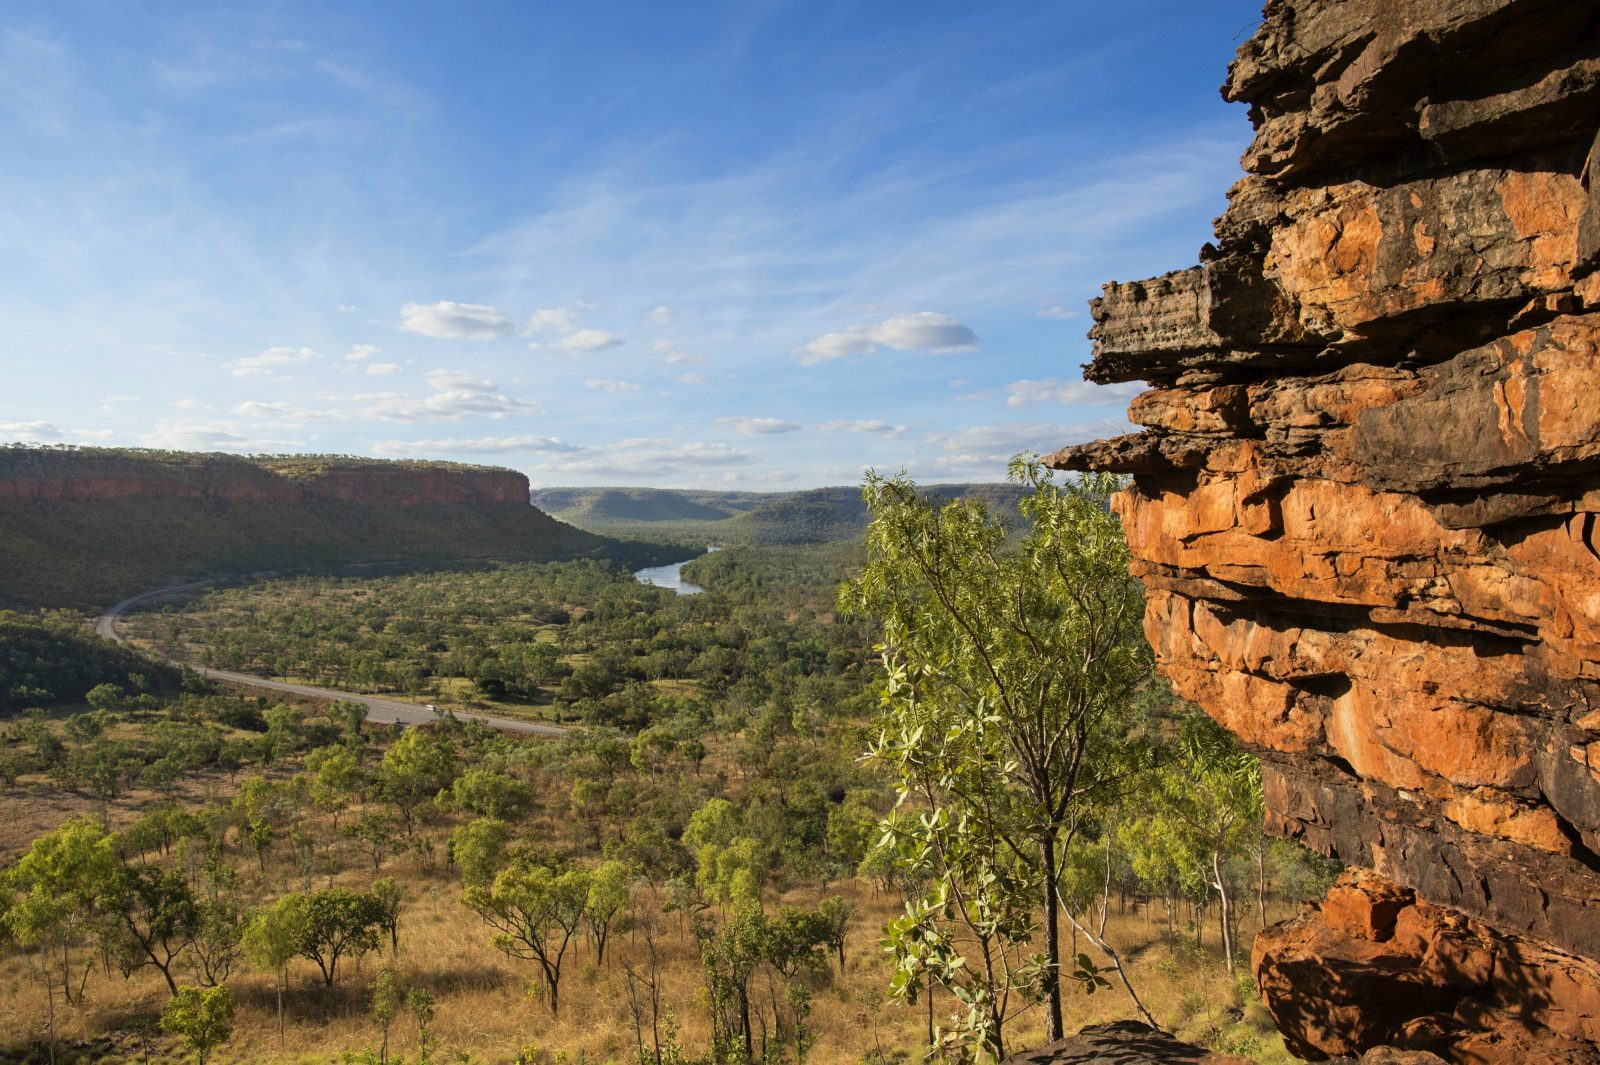 View over Gregory National Park